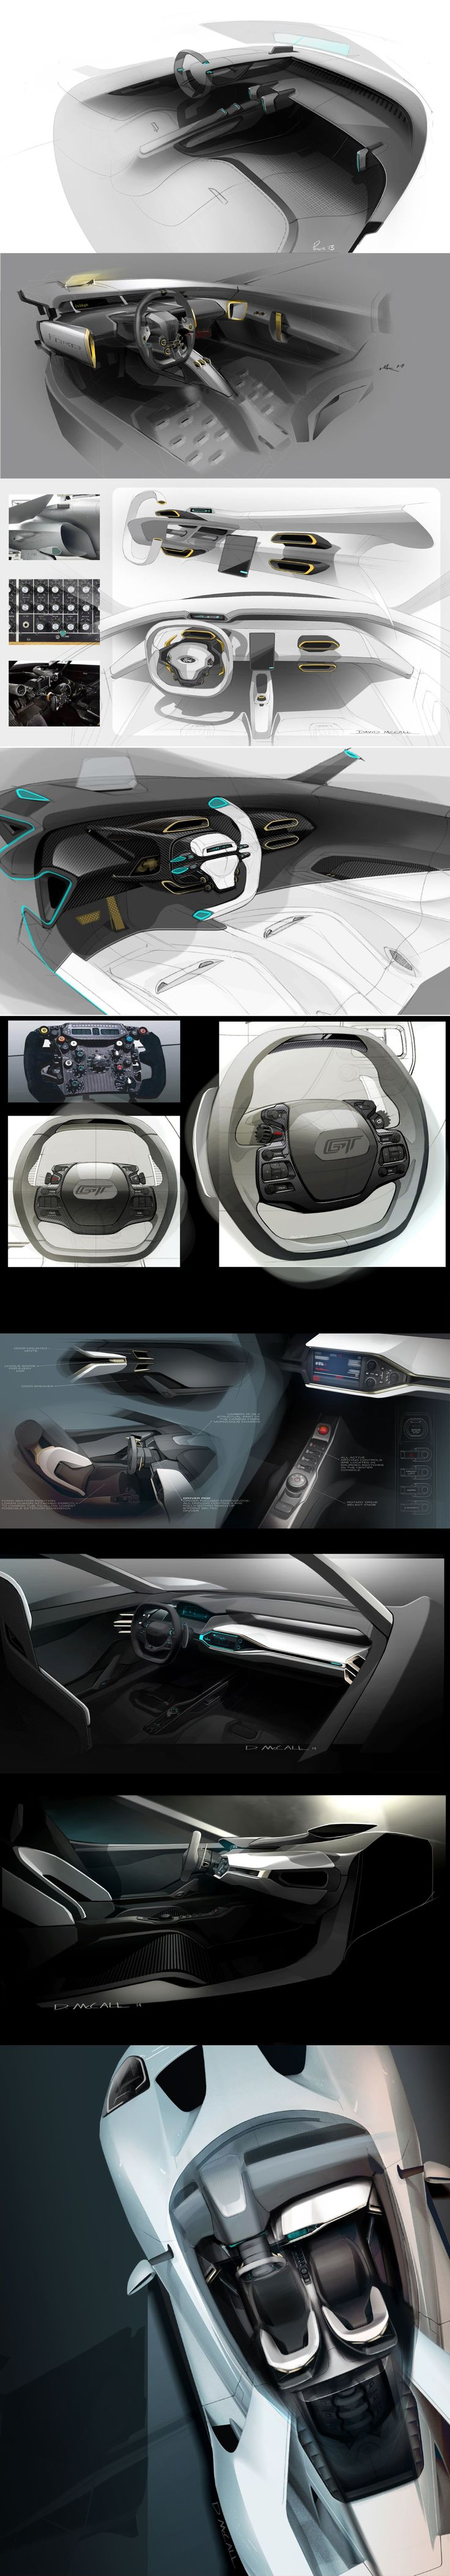 Ford GT Interior ::                                                                                                                                                                                 More